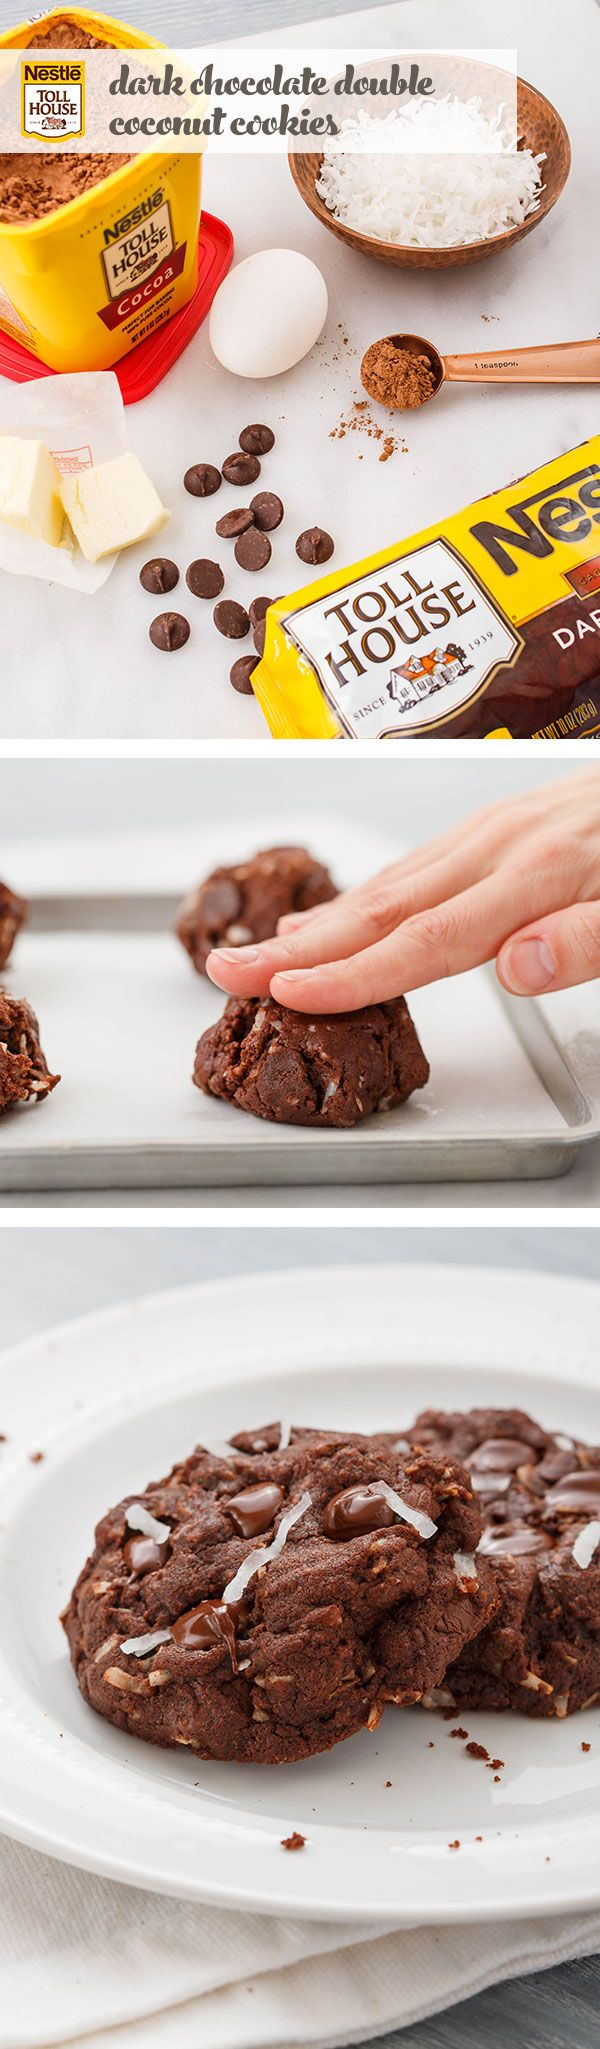 Insanely rich, chewy and chocolaty, these Dark Chocolate Double Coconut Cookies are irresistible. In just 20 easy minutes, you can indulge in a tempting bite. Start by mixing the ingredients according to the recipe, folding in Nestlé® Toll House® Dark Chocolate Morsels and shredded coconut. Spoon onto a prepared baking tray and bake for 14 minutes. The only way to make this treat even better? Share it with someone who gives you butterflies and makes every day seem special.